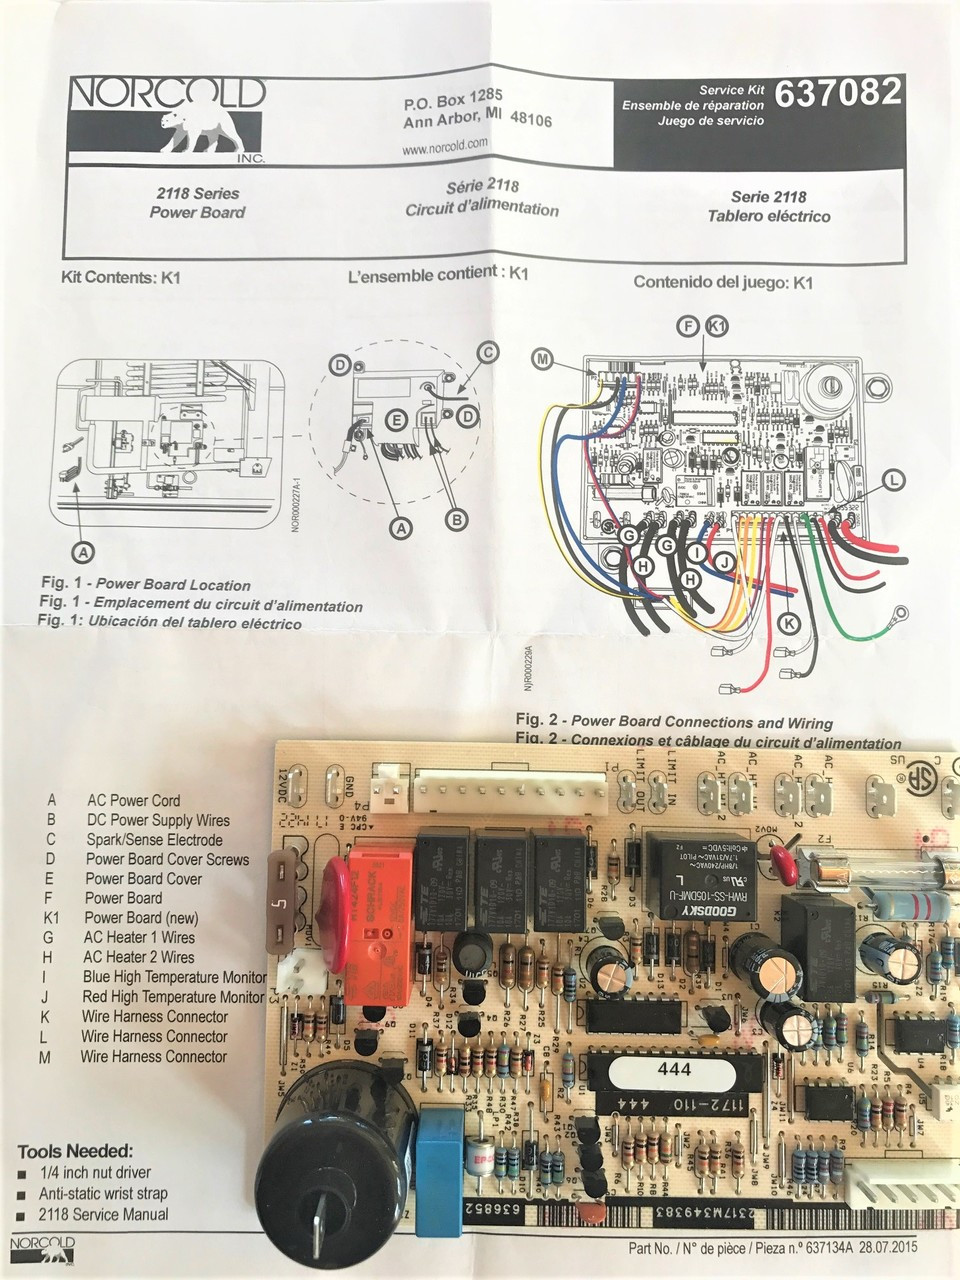 IMG_0059_2__66296.1504279223.1280.1280?c=2 norcold model n621 rv refrigerator wiring diagram norcold 1200 norcold power board wiring diagram at mifinder.co